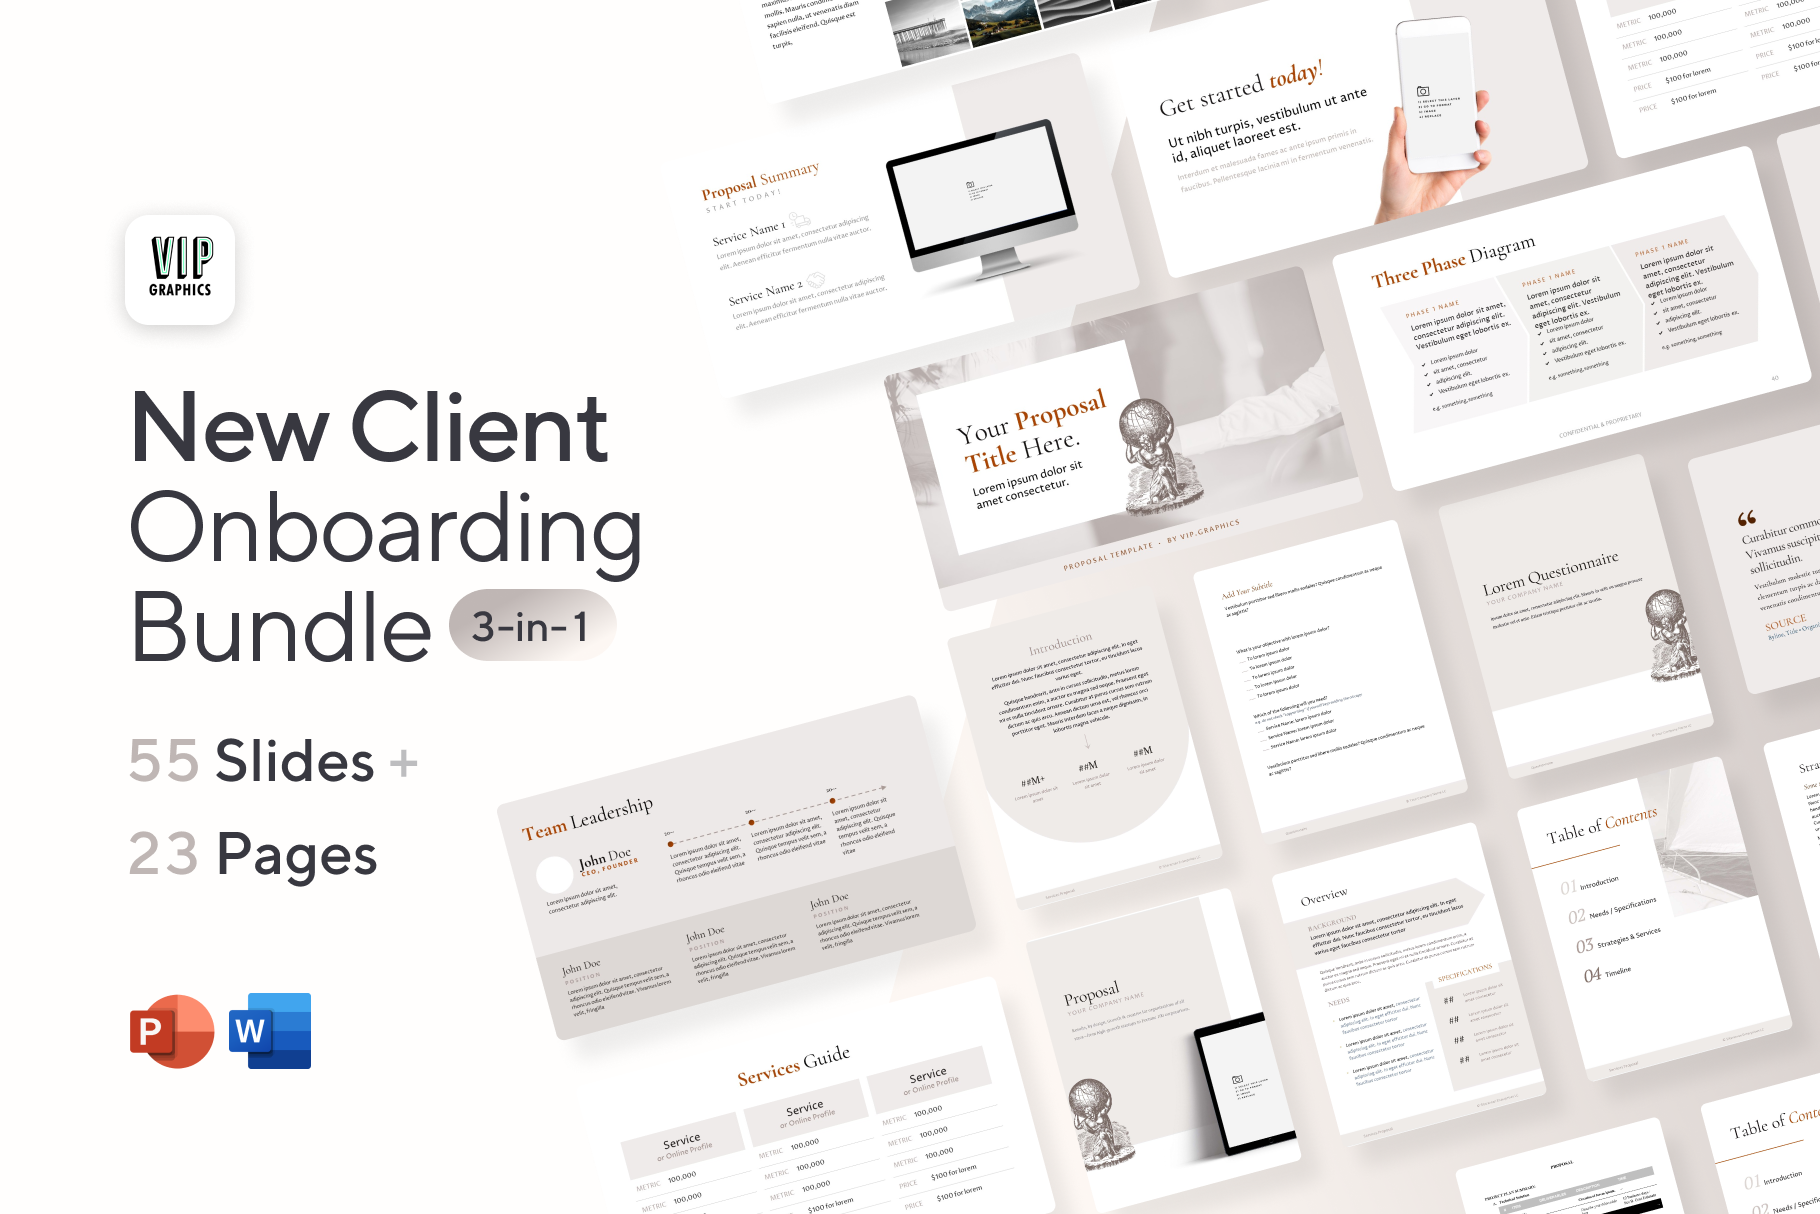 New Client Onboarding Bundle (3-in-1)